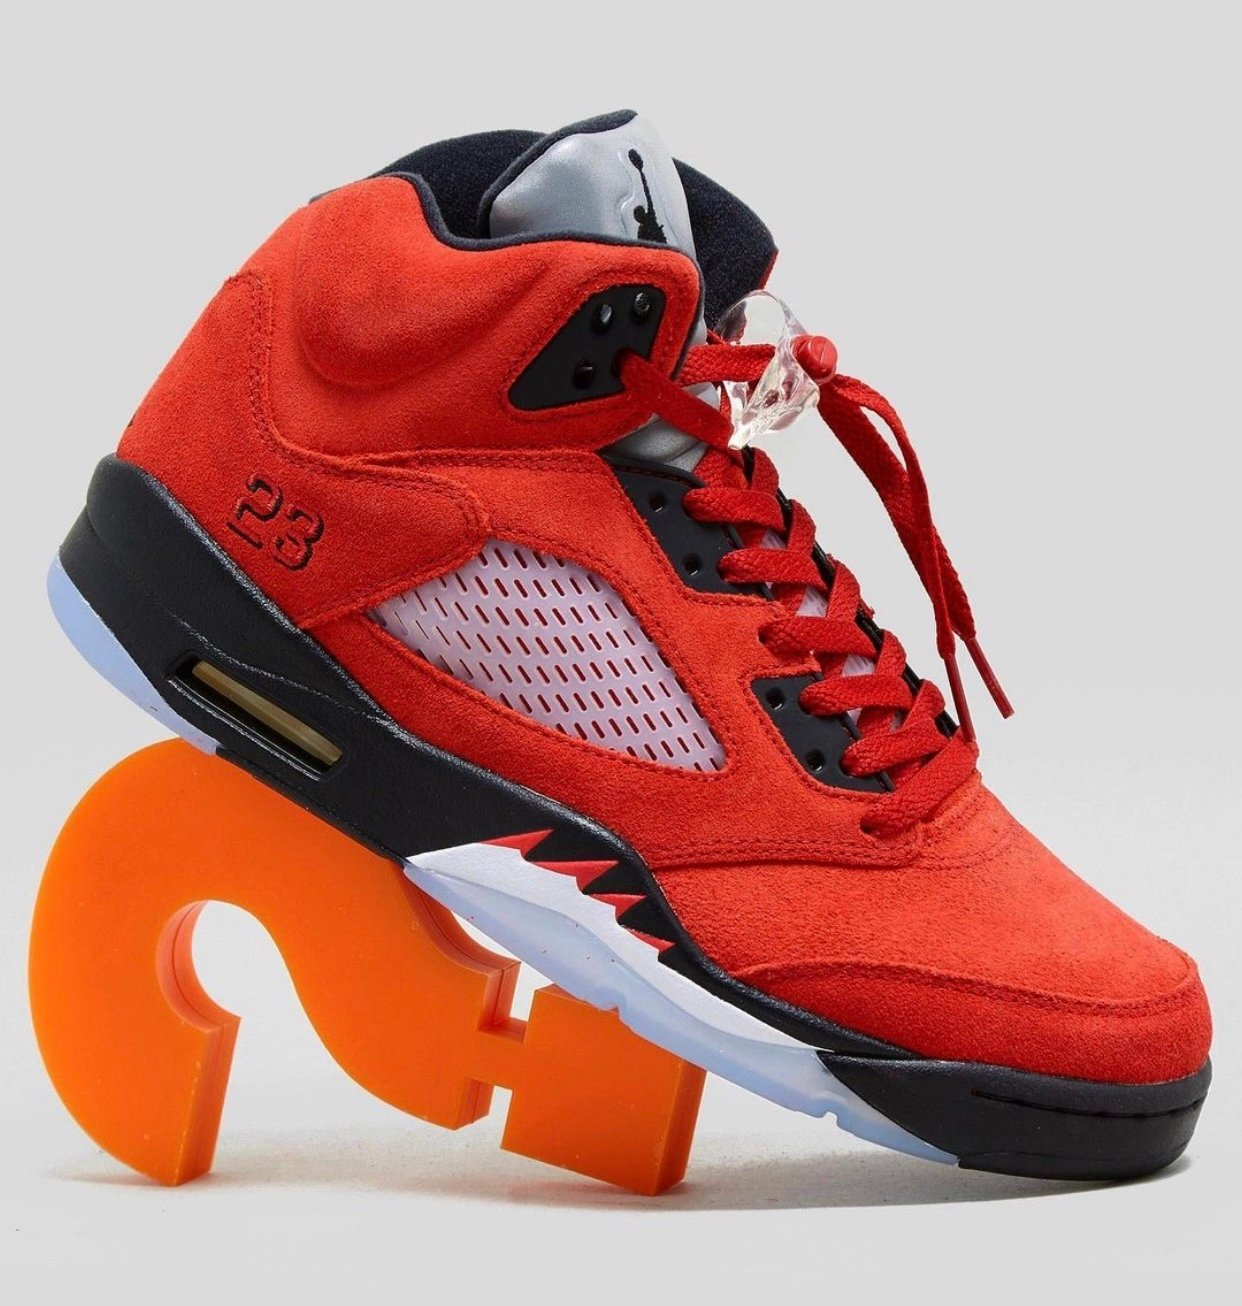 nike air max one outlet yellow light switch line Raging Bull Varsity Red DD0587-600 Release Date